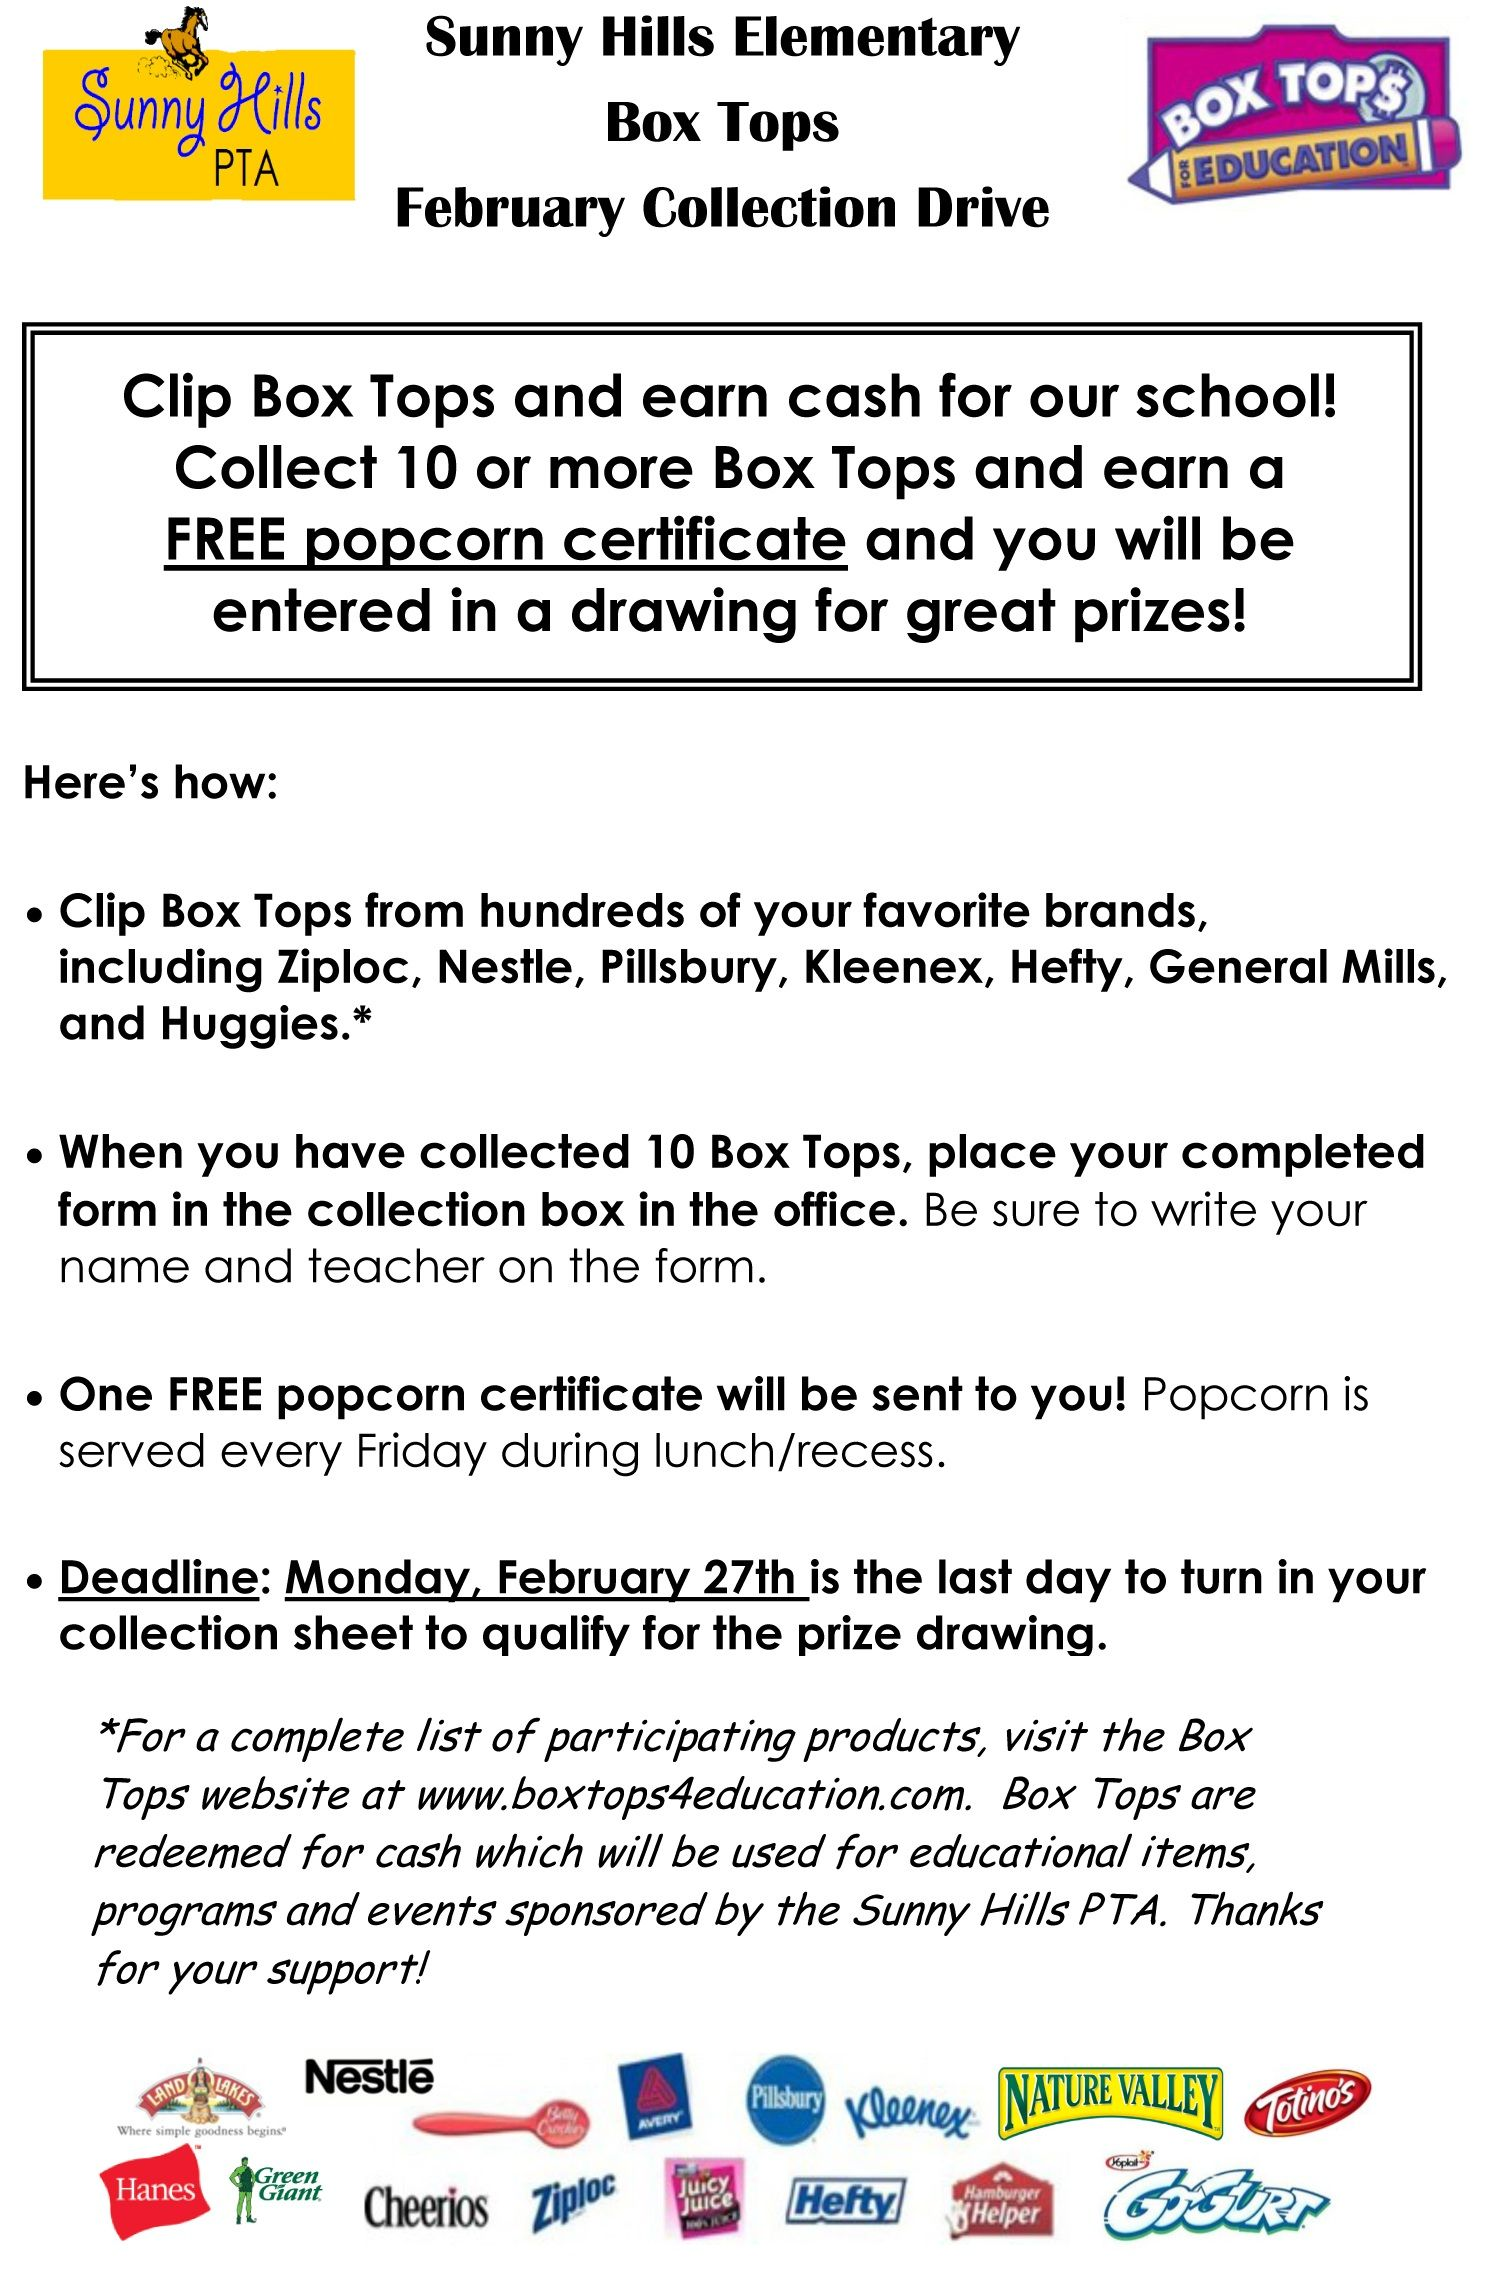 Collect Those Box Tops Idea for Box Tops collection